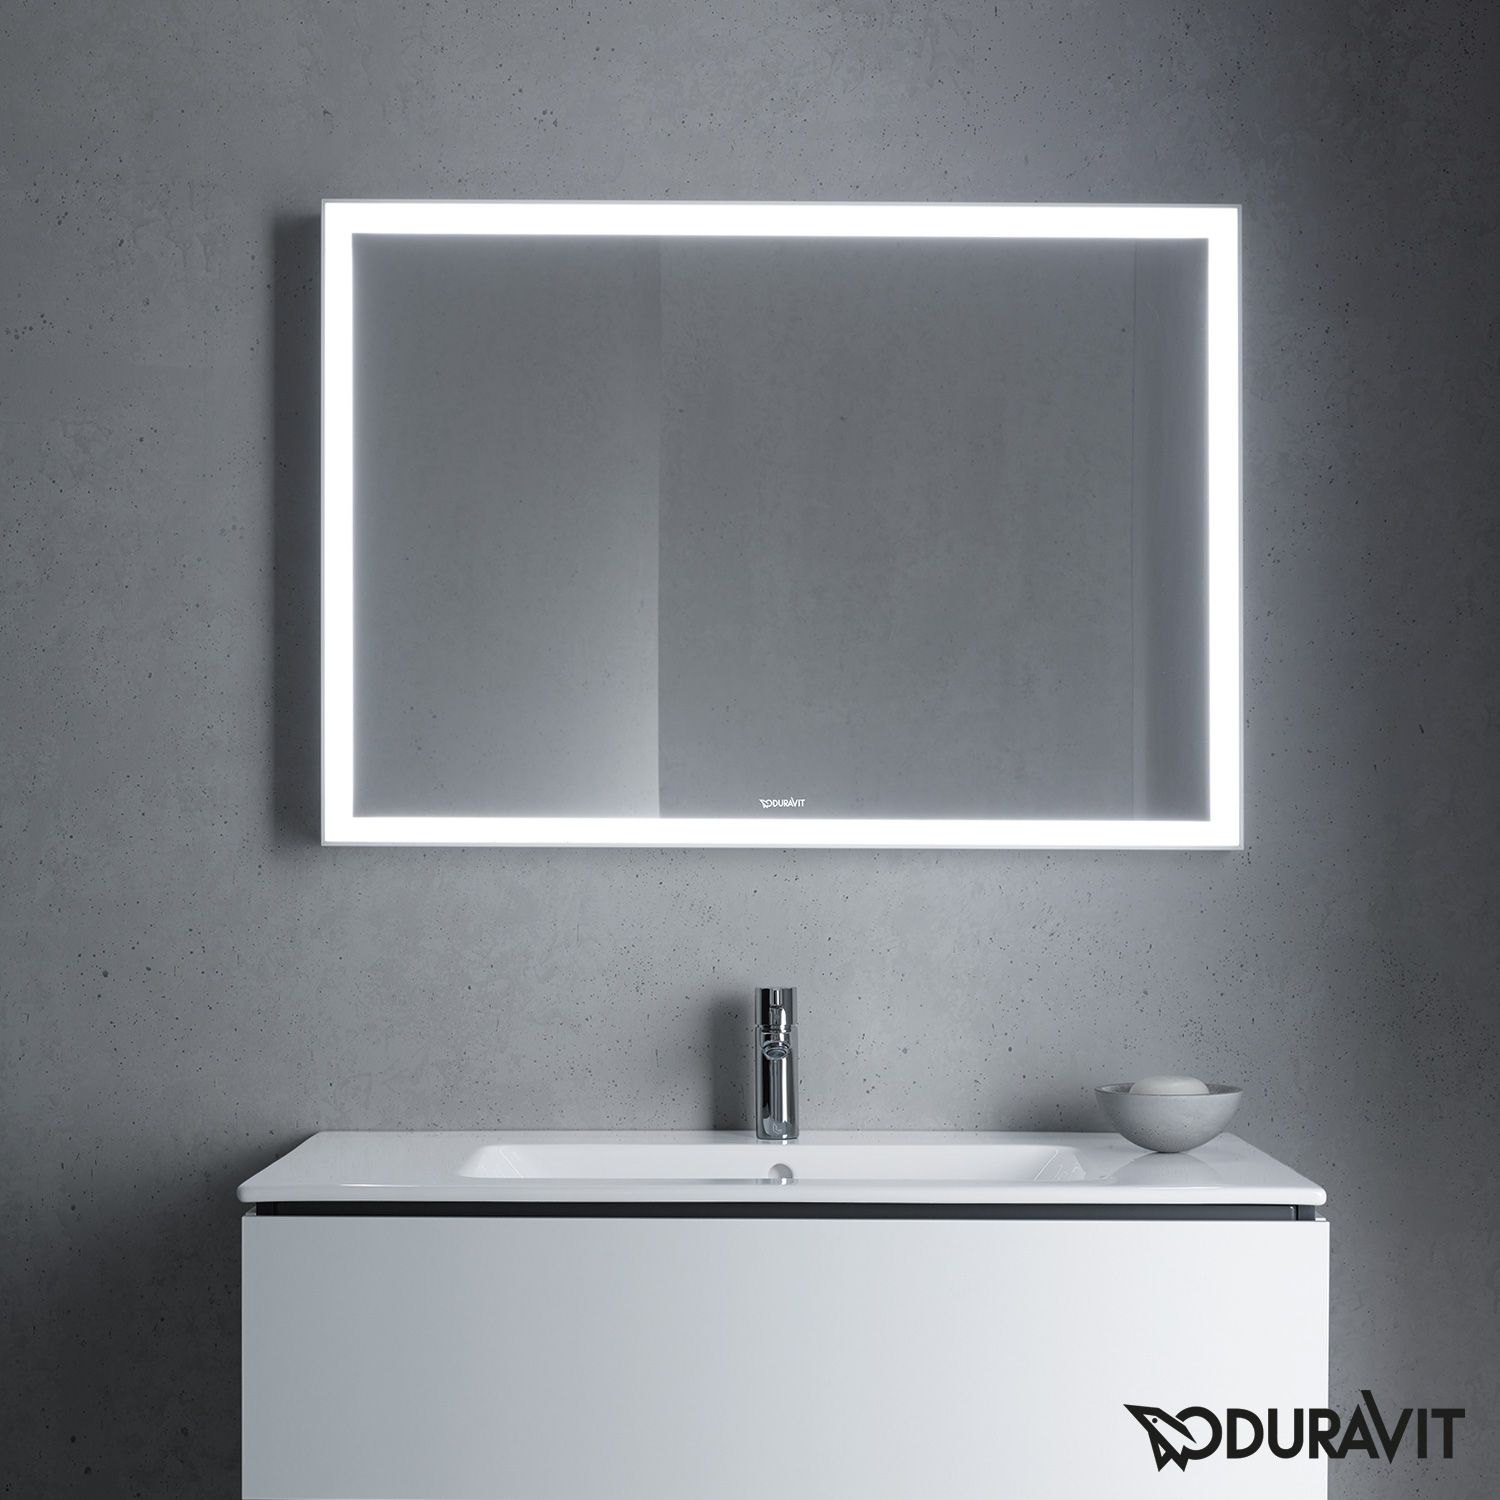 duravit l cube spiegel mit led beleuchtung lc738200000 reuter onlineshop. Black Bedroom Furniture Sets. Home Design Ideas